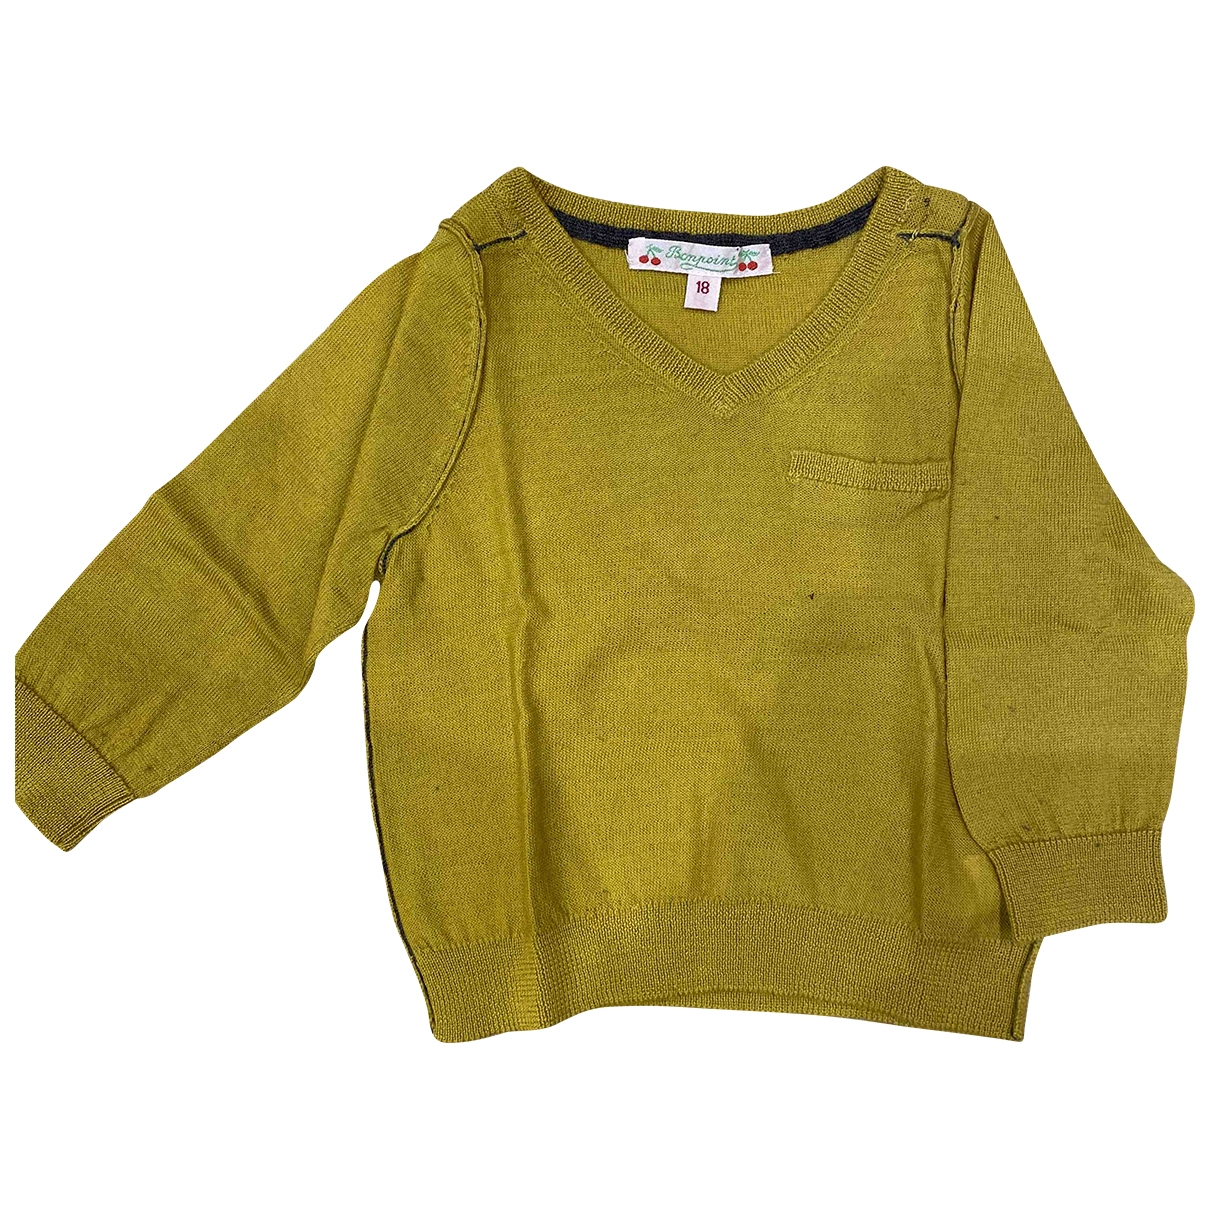 Bonpoint \N Yellow Wool Knitwear for Kids 18 months - up to 81cm FR